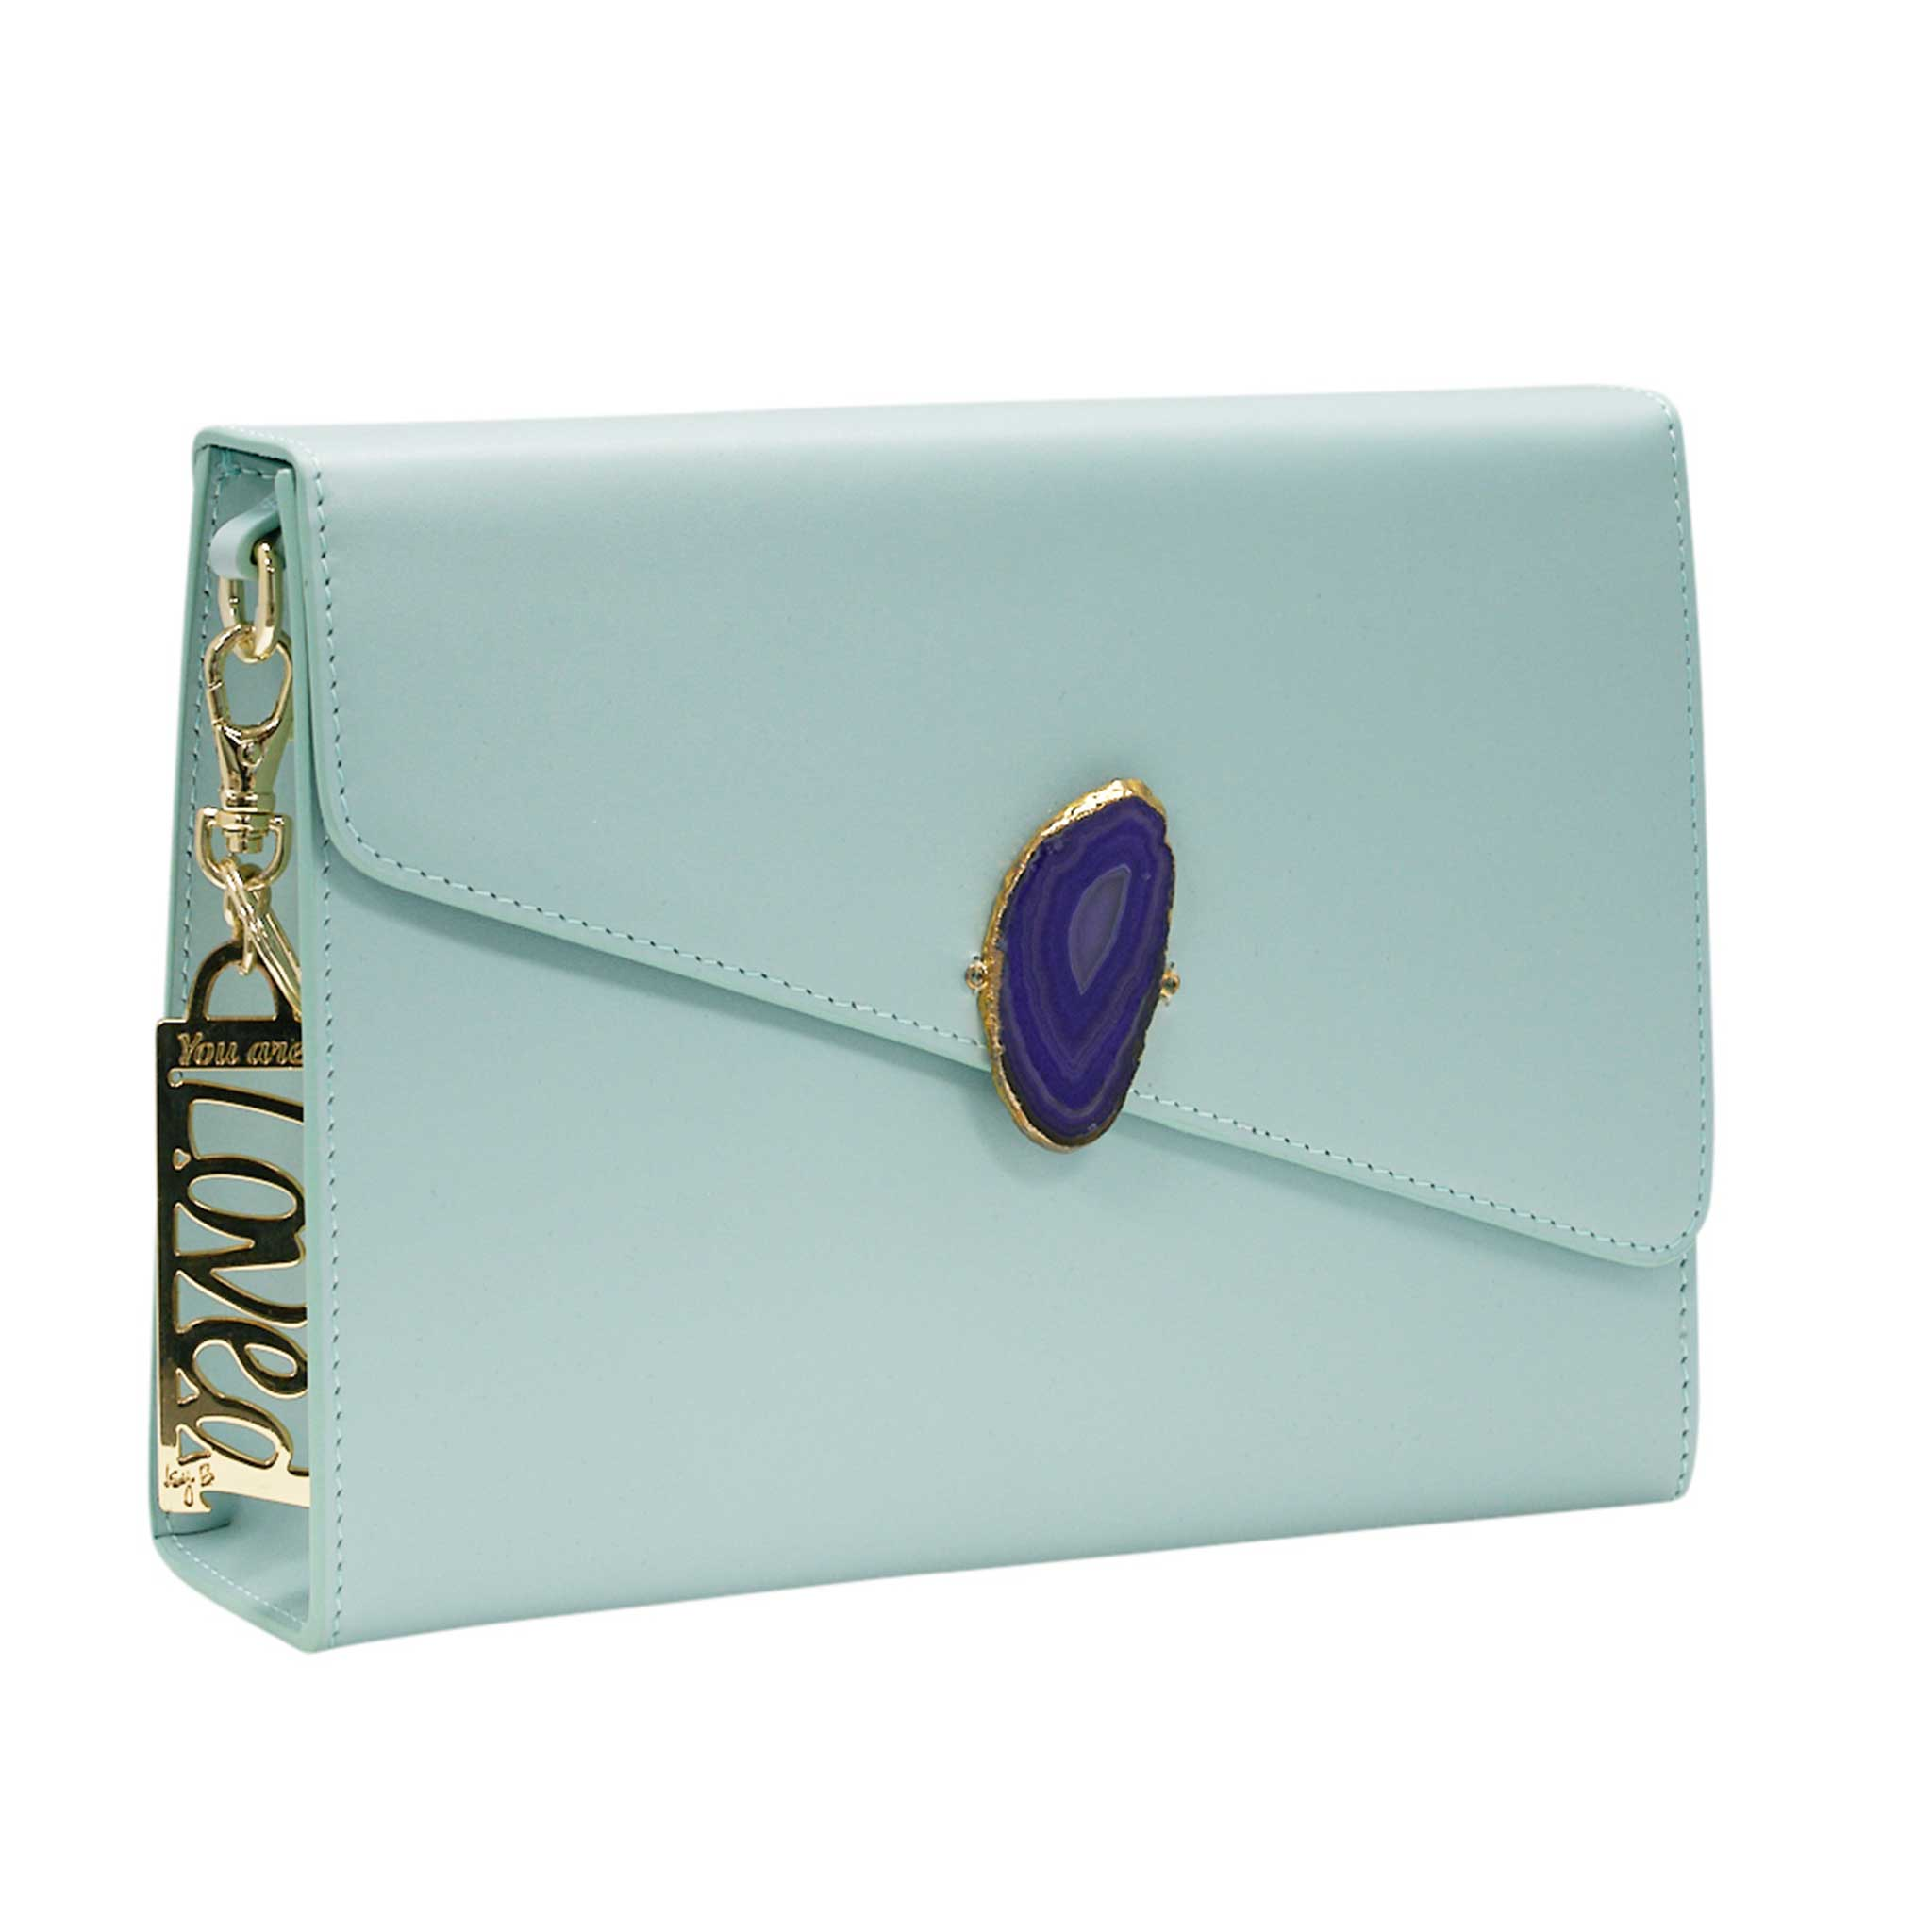 LOVED BAG - MOONSTONE WHITE LEATHER WITH BLUE AGATE - 1.02.006.007